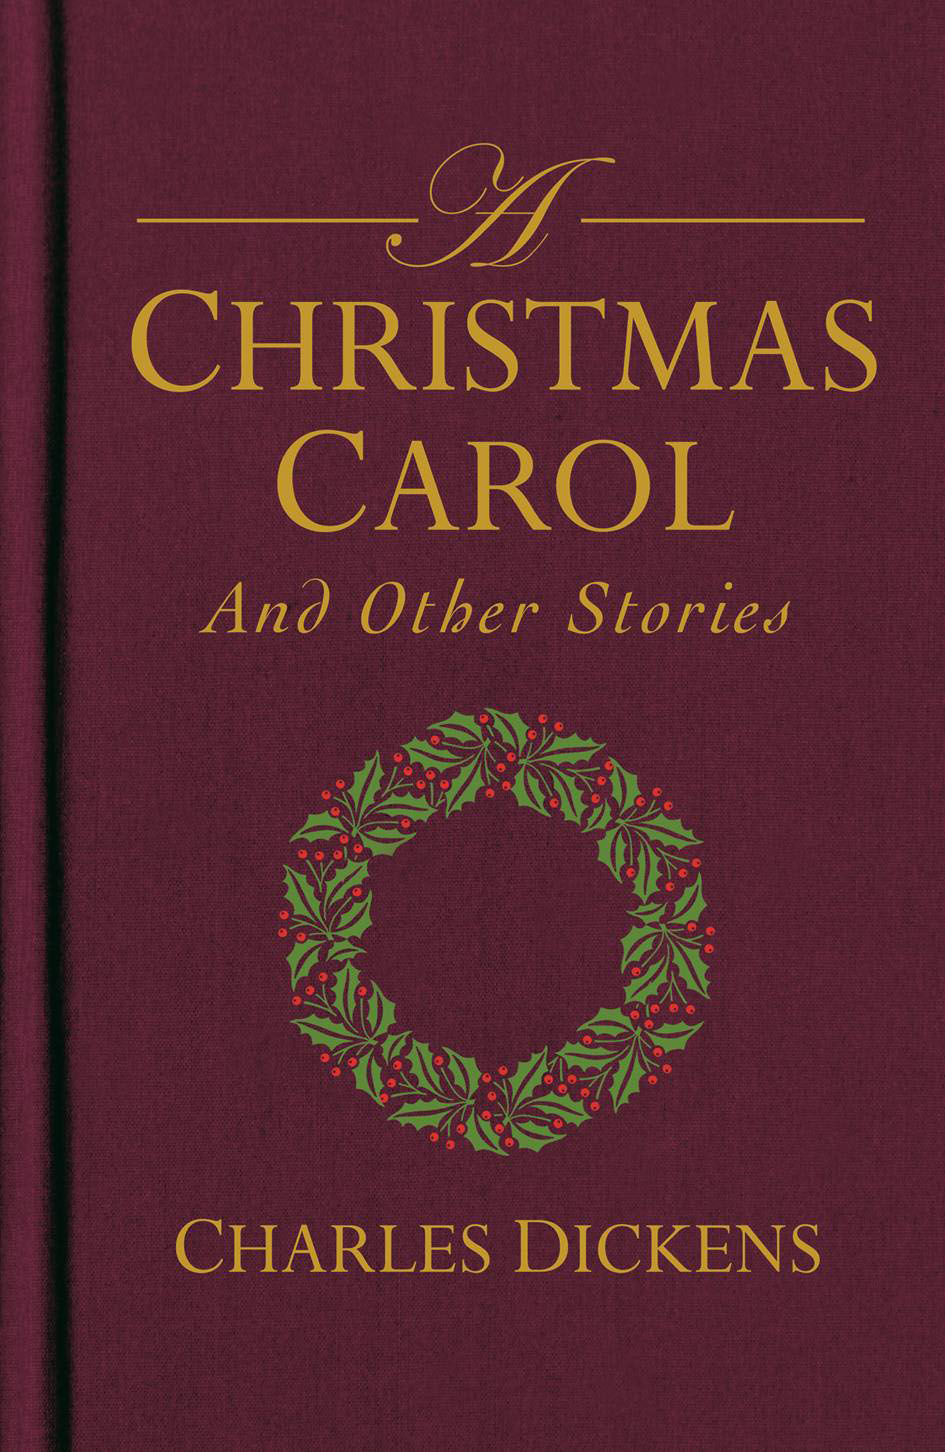 a christmas carol and other stories charles dickens - When Was A Christmas Carol Written